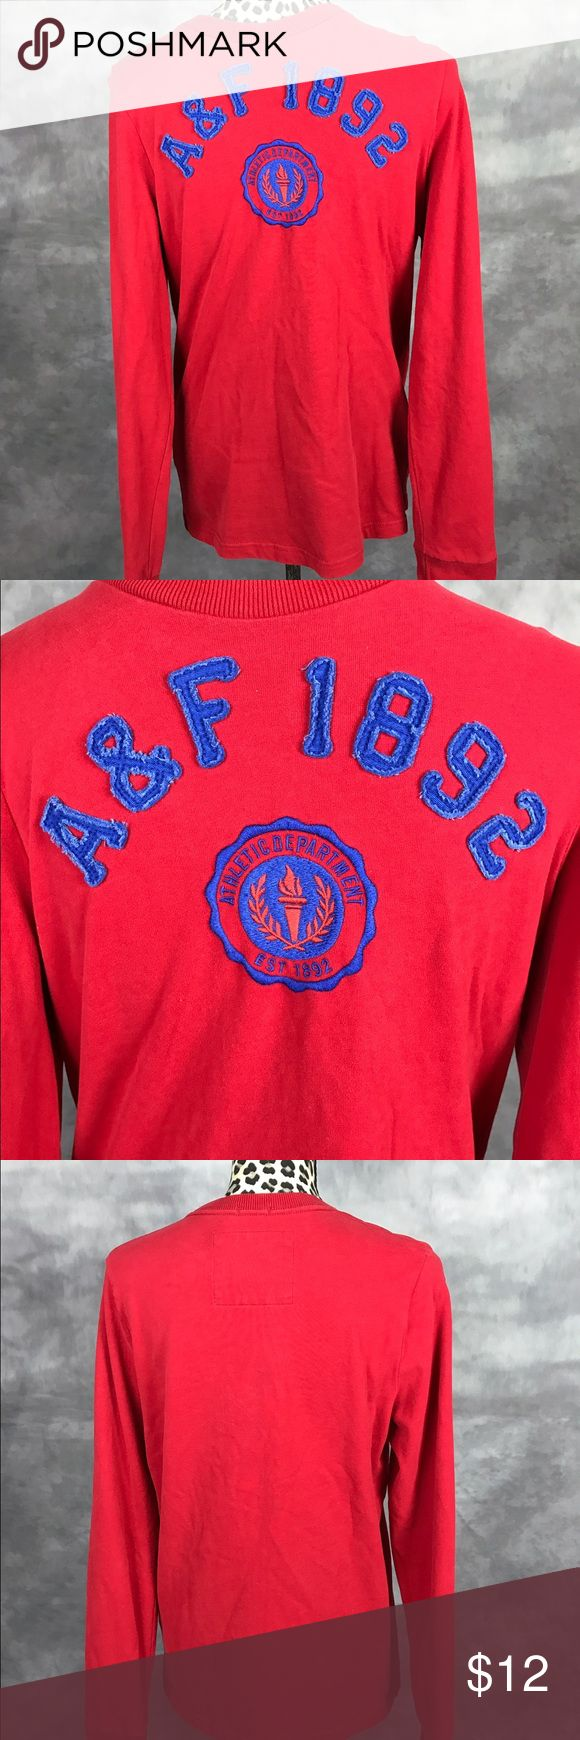 Abercrombie And Fitch Young Men t-shirt Great used condition Abercrombie & Fitch Shirts Tees - Long Sleeve